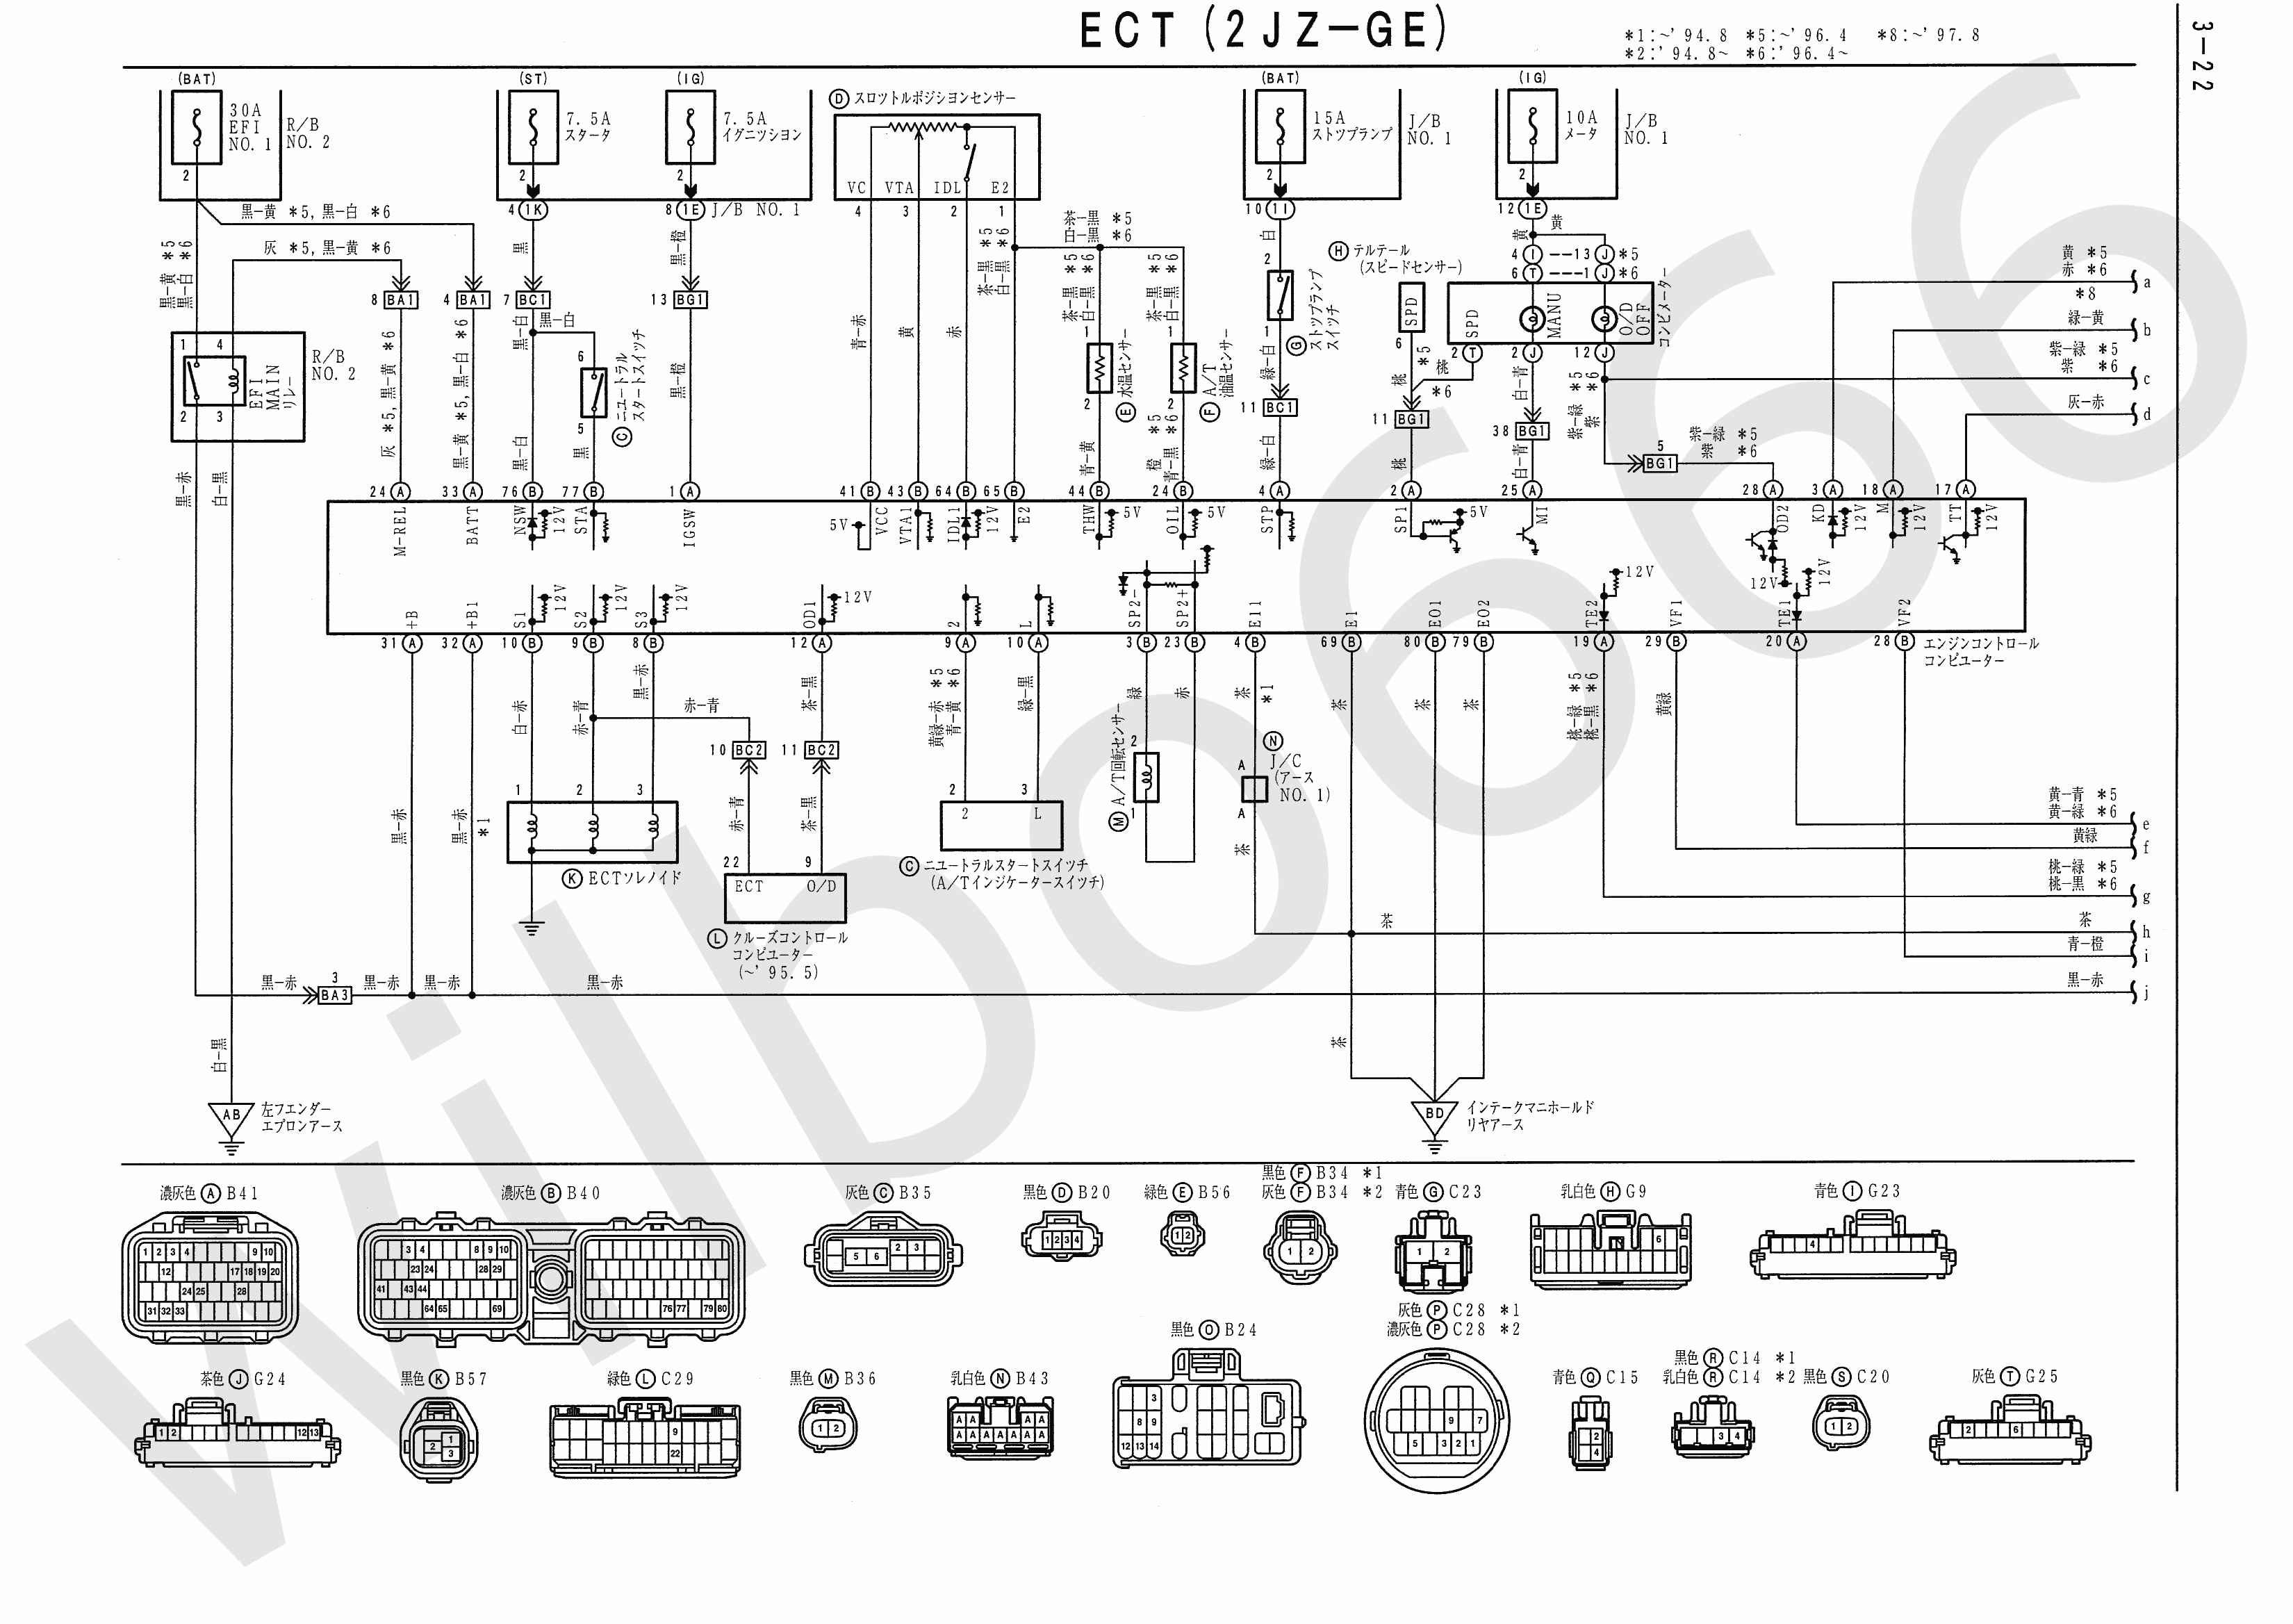 JZA80 Electrical Wiring Diagram 6742505 3 22?ssl=1 diagram of wiring code symbols millions diagram and concept,2005 Nissan Frontier Wiring Diagram Tail Lights Free Download